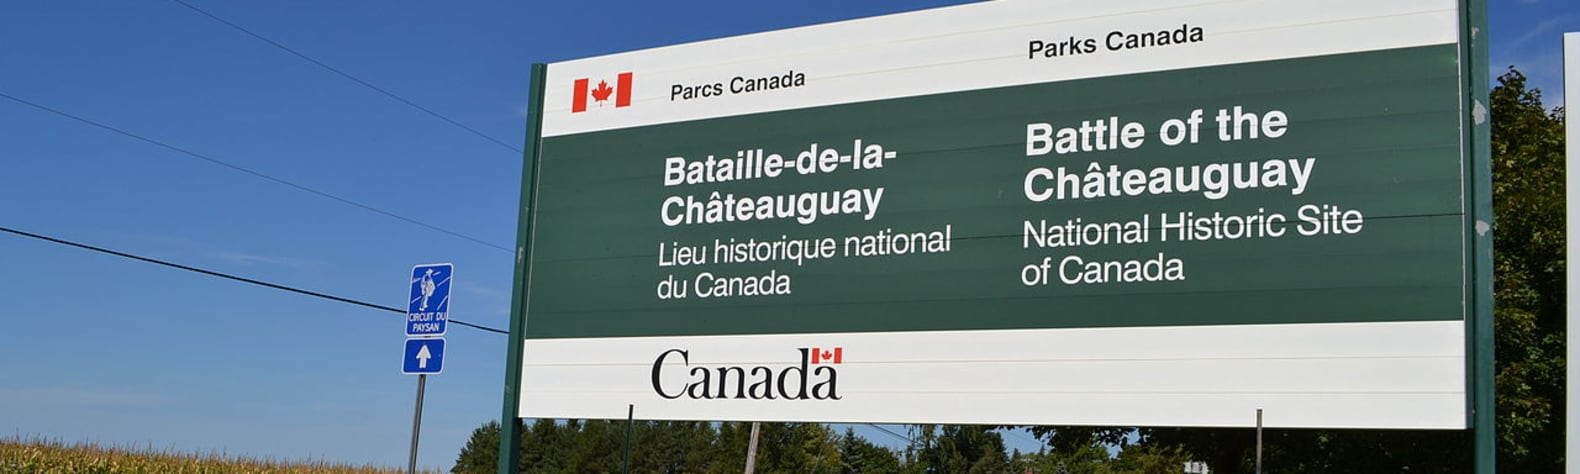 Battle of the Châteauguay National Historic Site